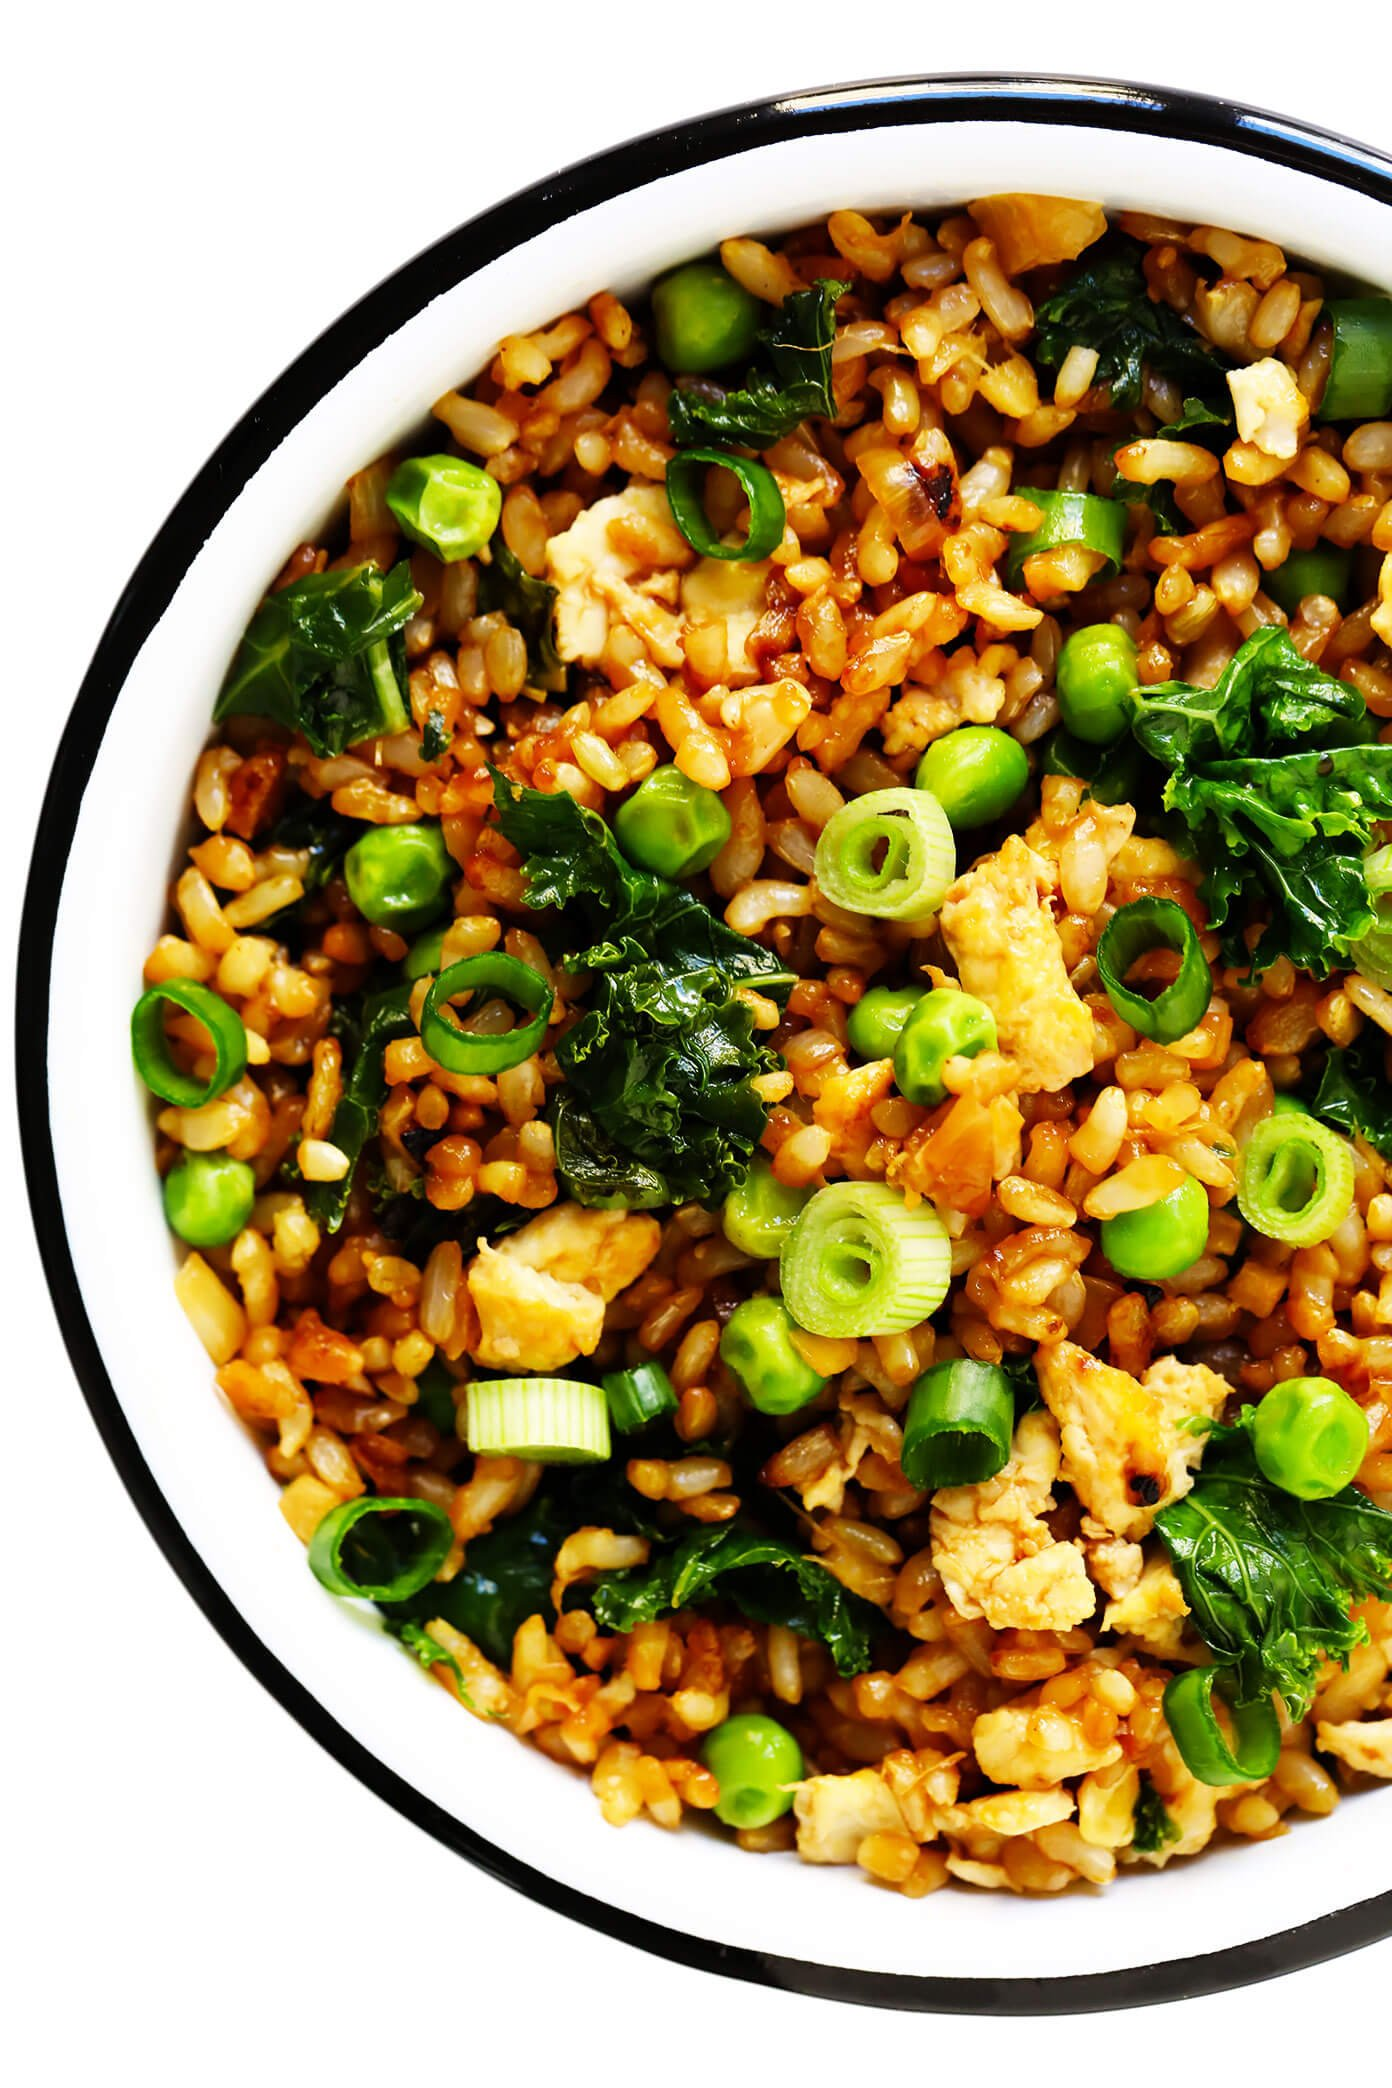 Rice Cooker Recipes Ginger Kale Fried Rice In Bowl